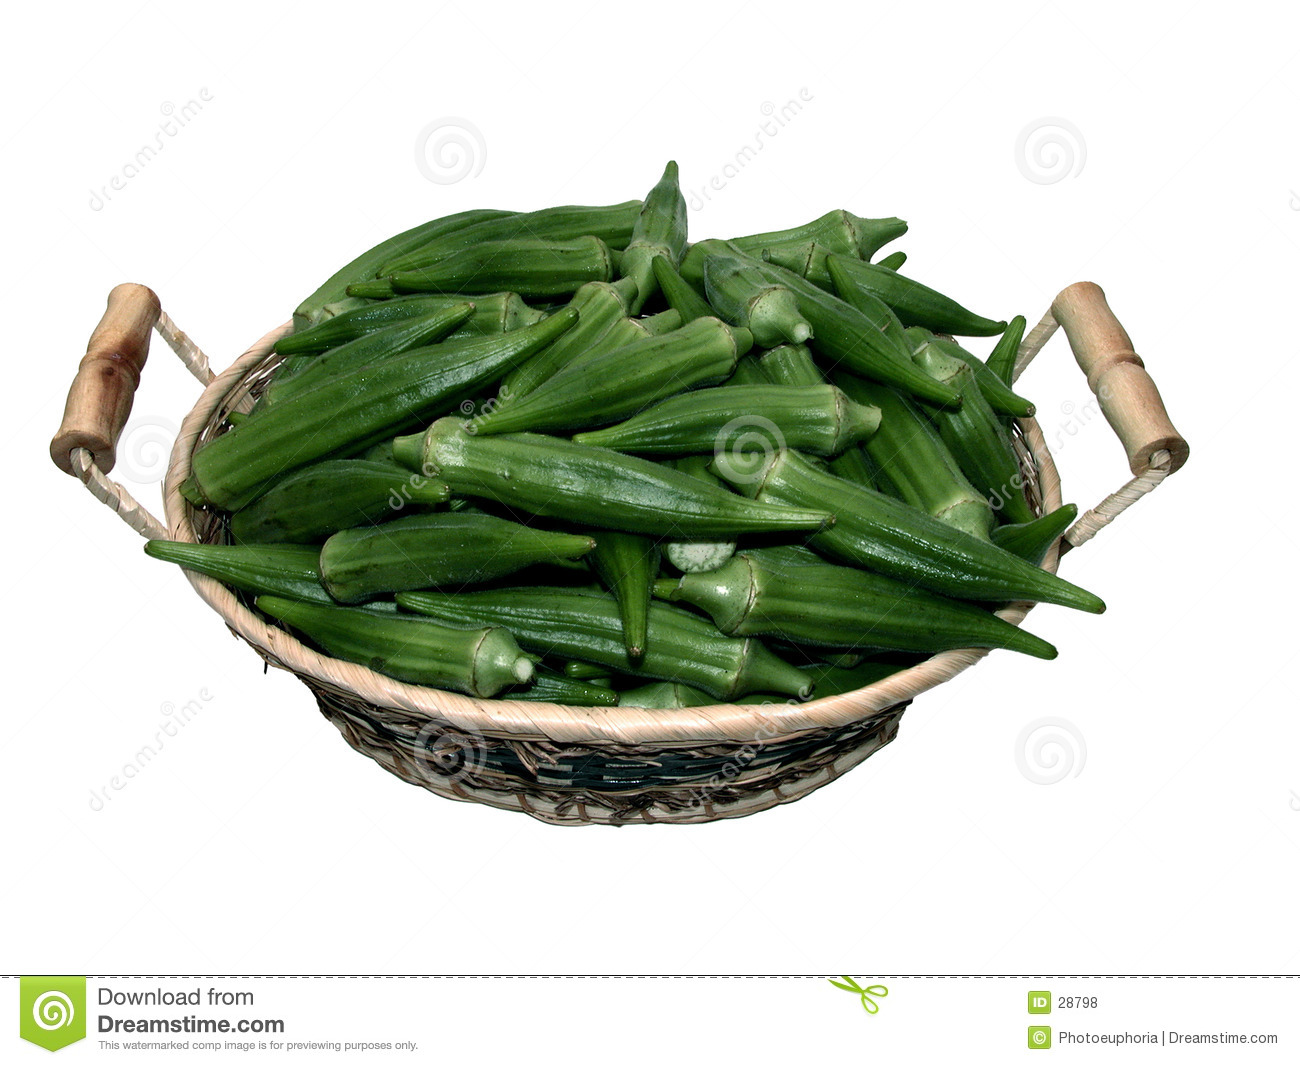 Food: Basket of Okra